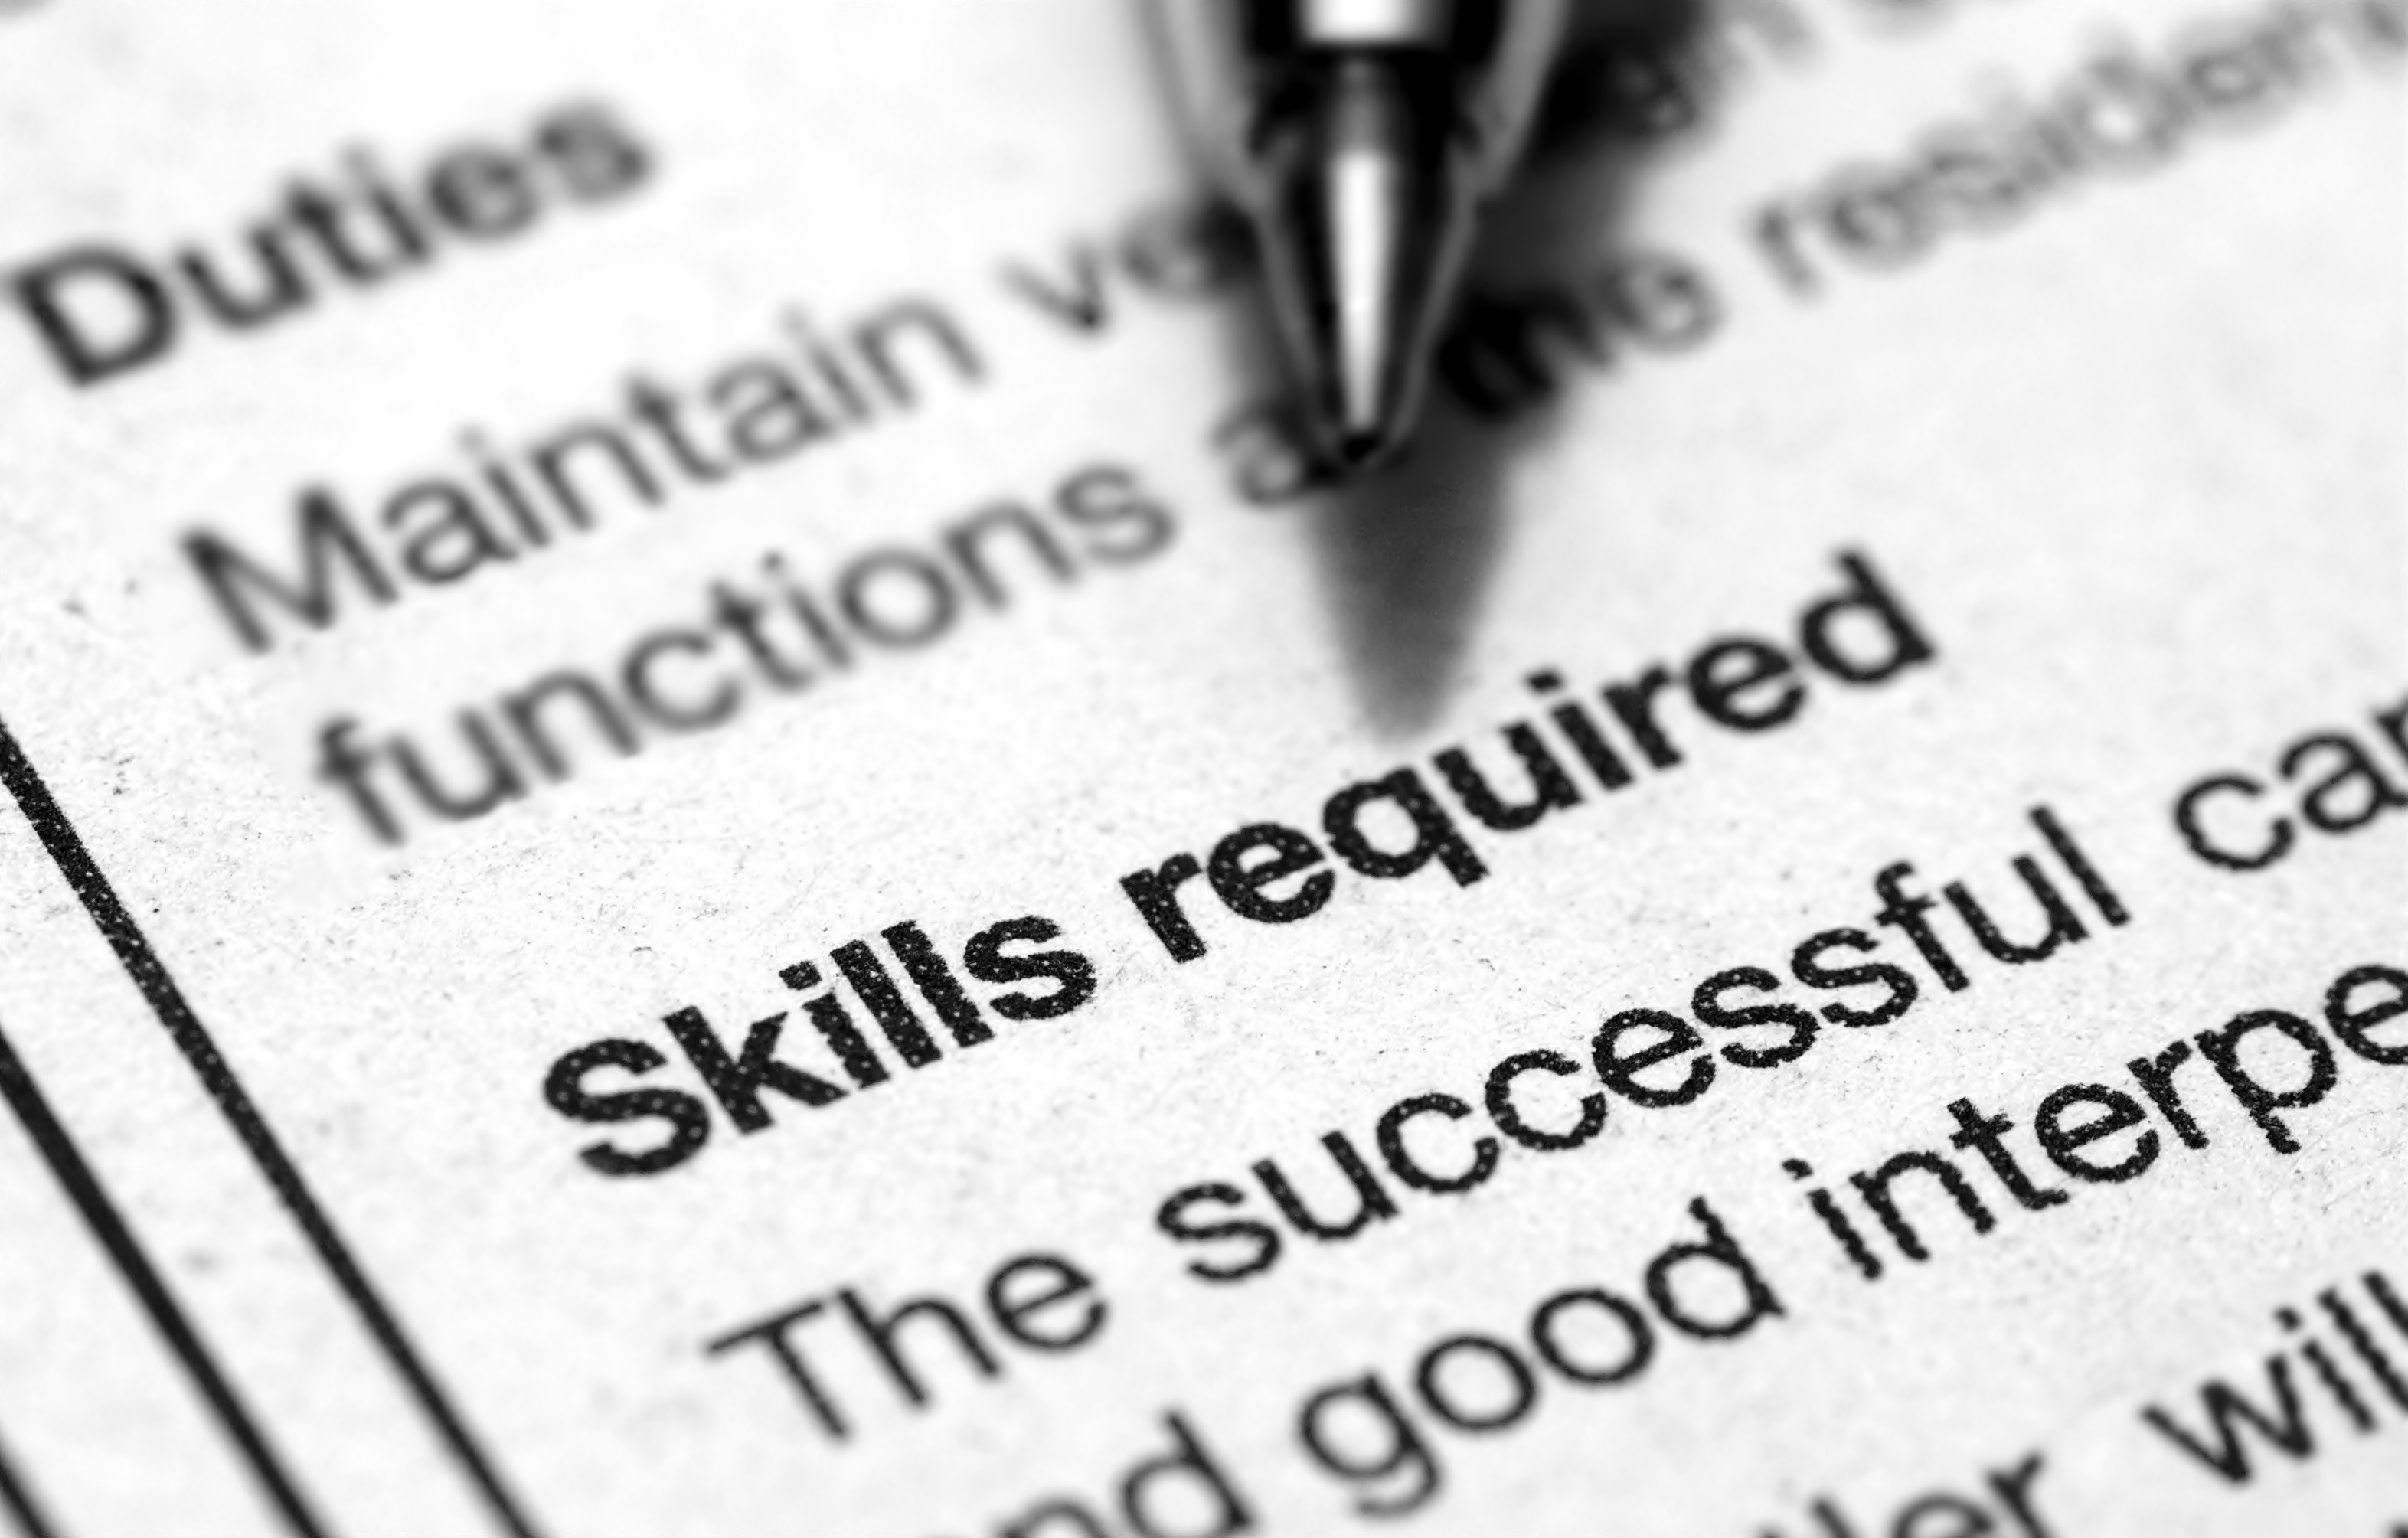 Job duties and tasks for: Content Marketing Job Description And Titles For Building Your Team